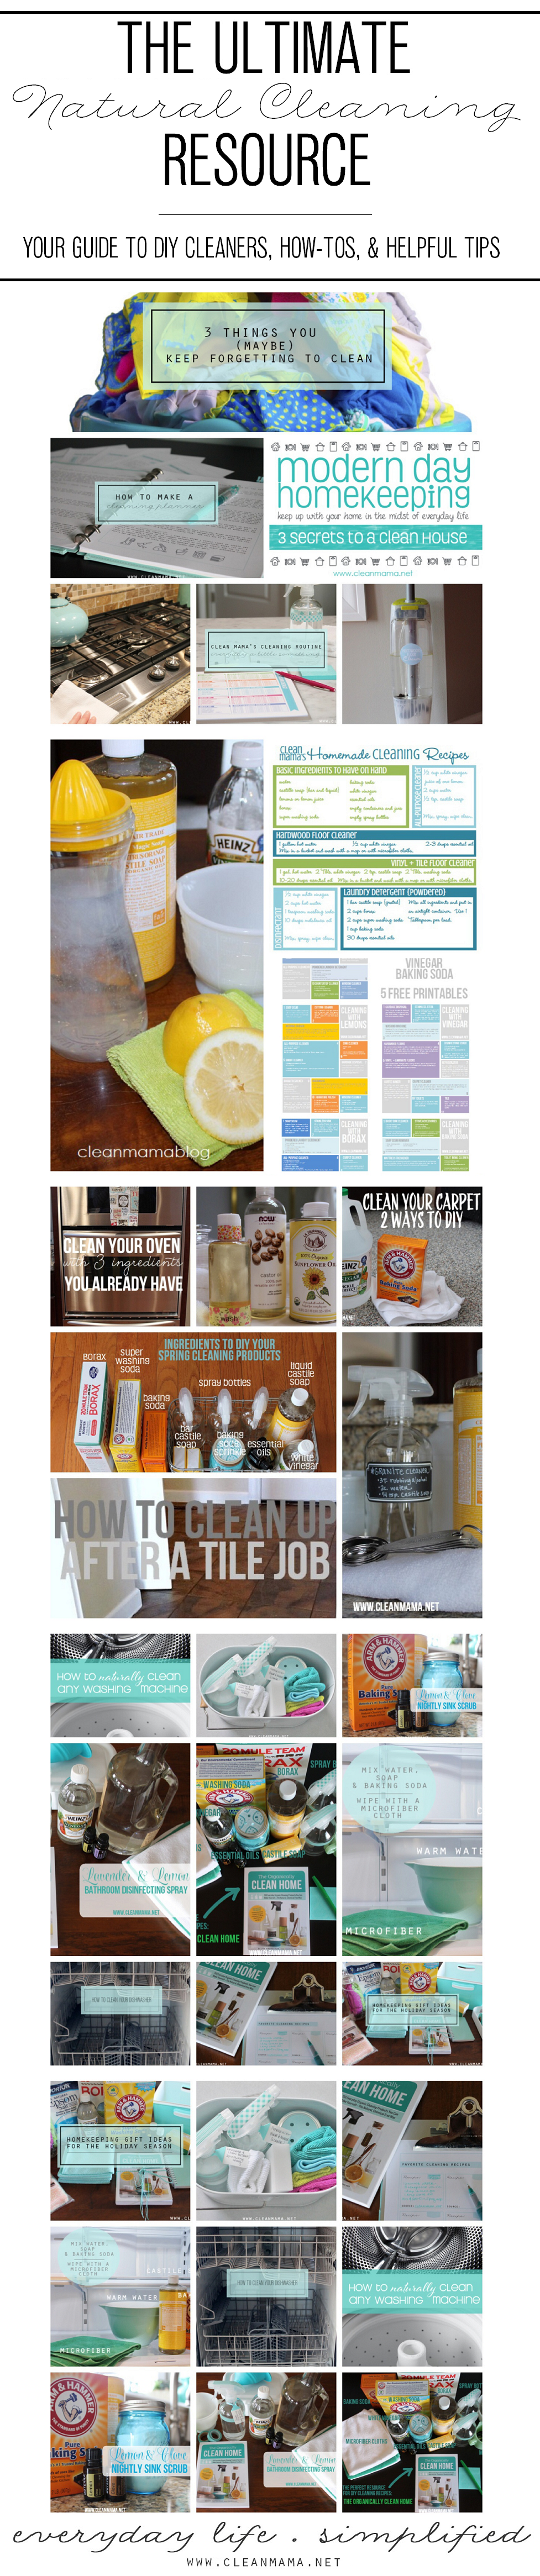 The Ultimate Natural Cleaning Resource - Your Guide to DIY Cleaners, How-Tos, and Helpful Tips via Clean Mama